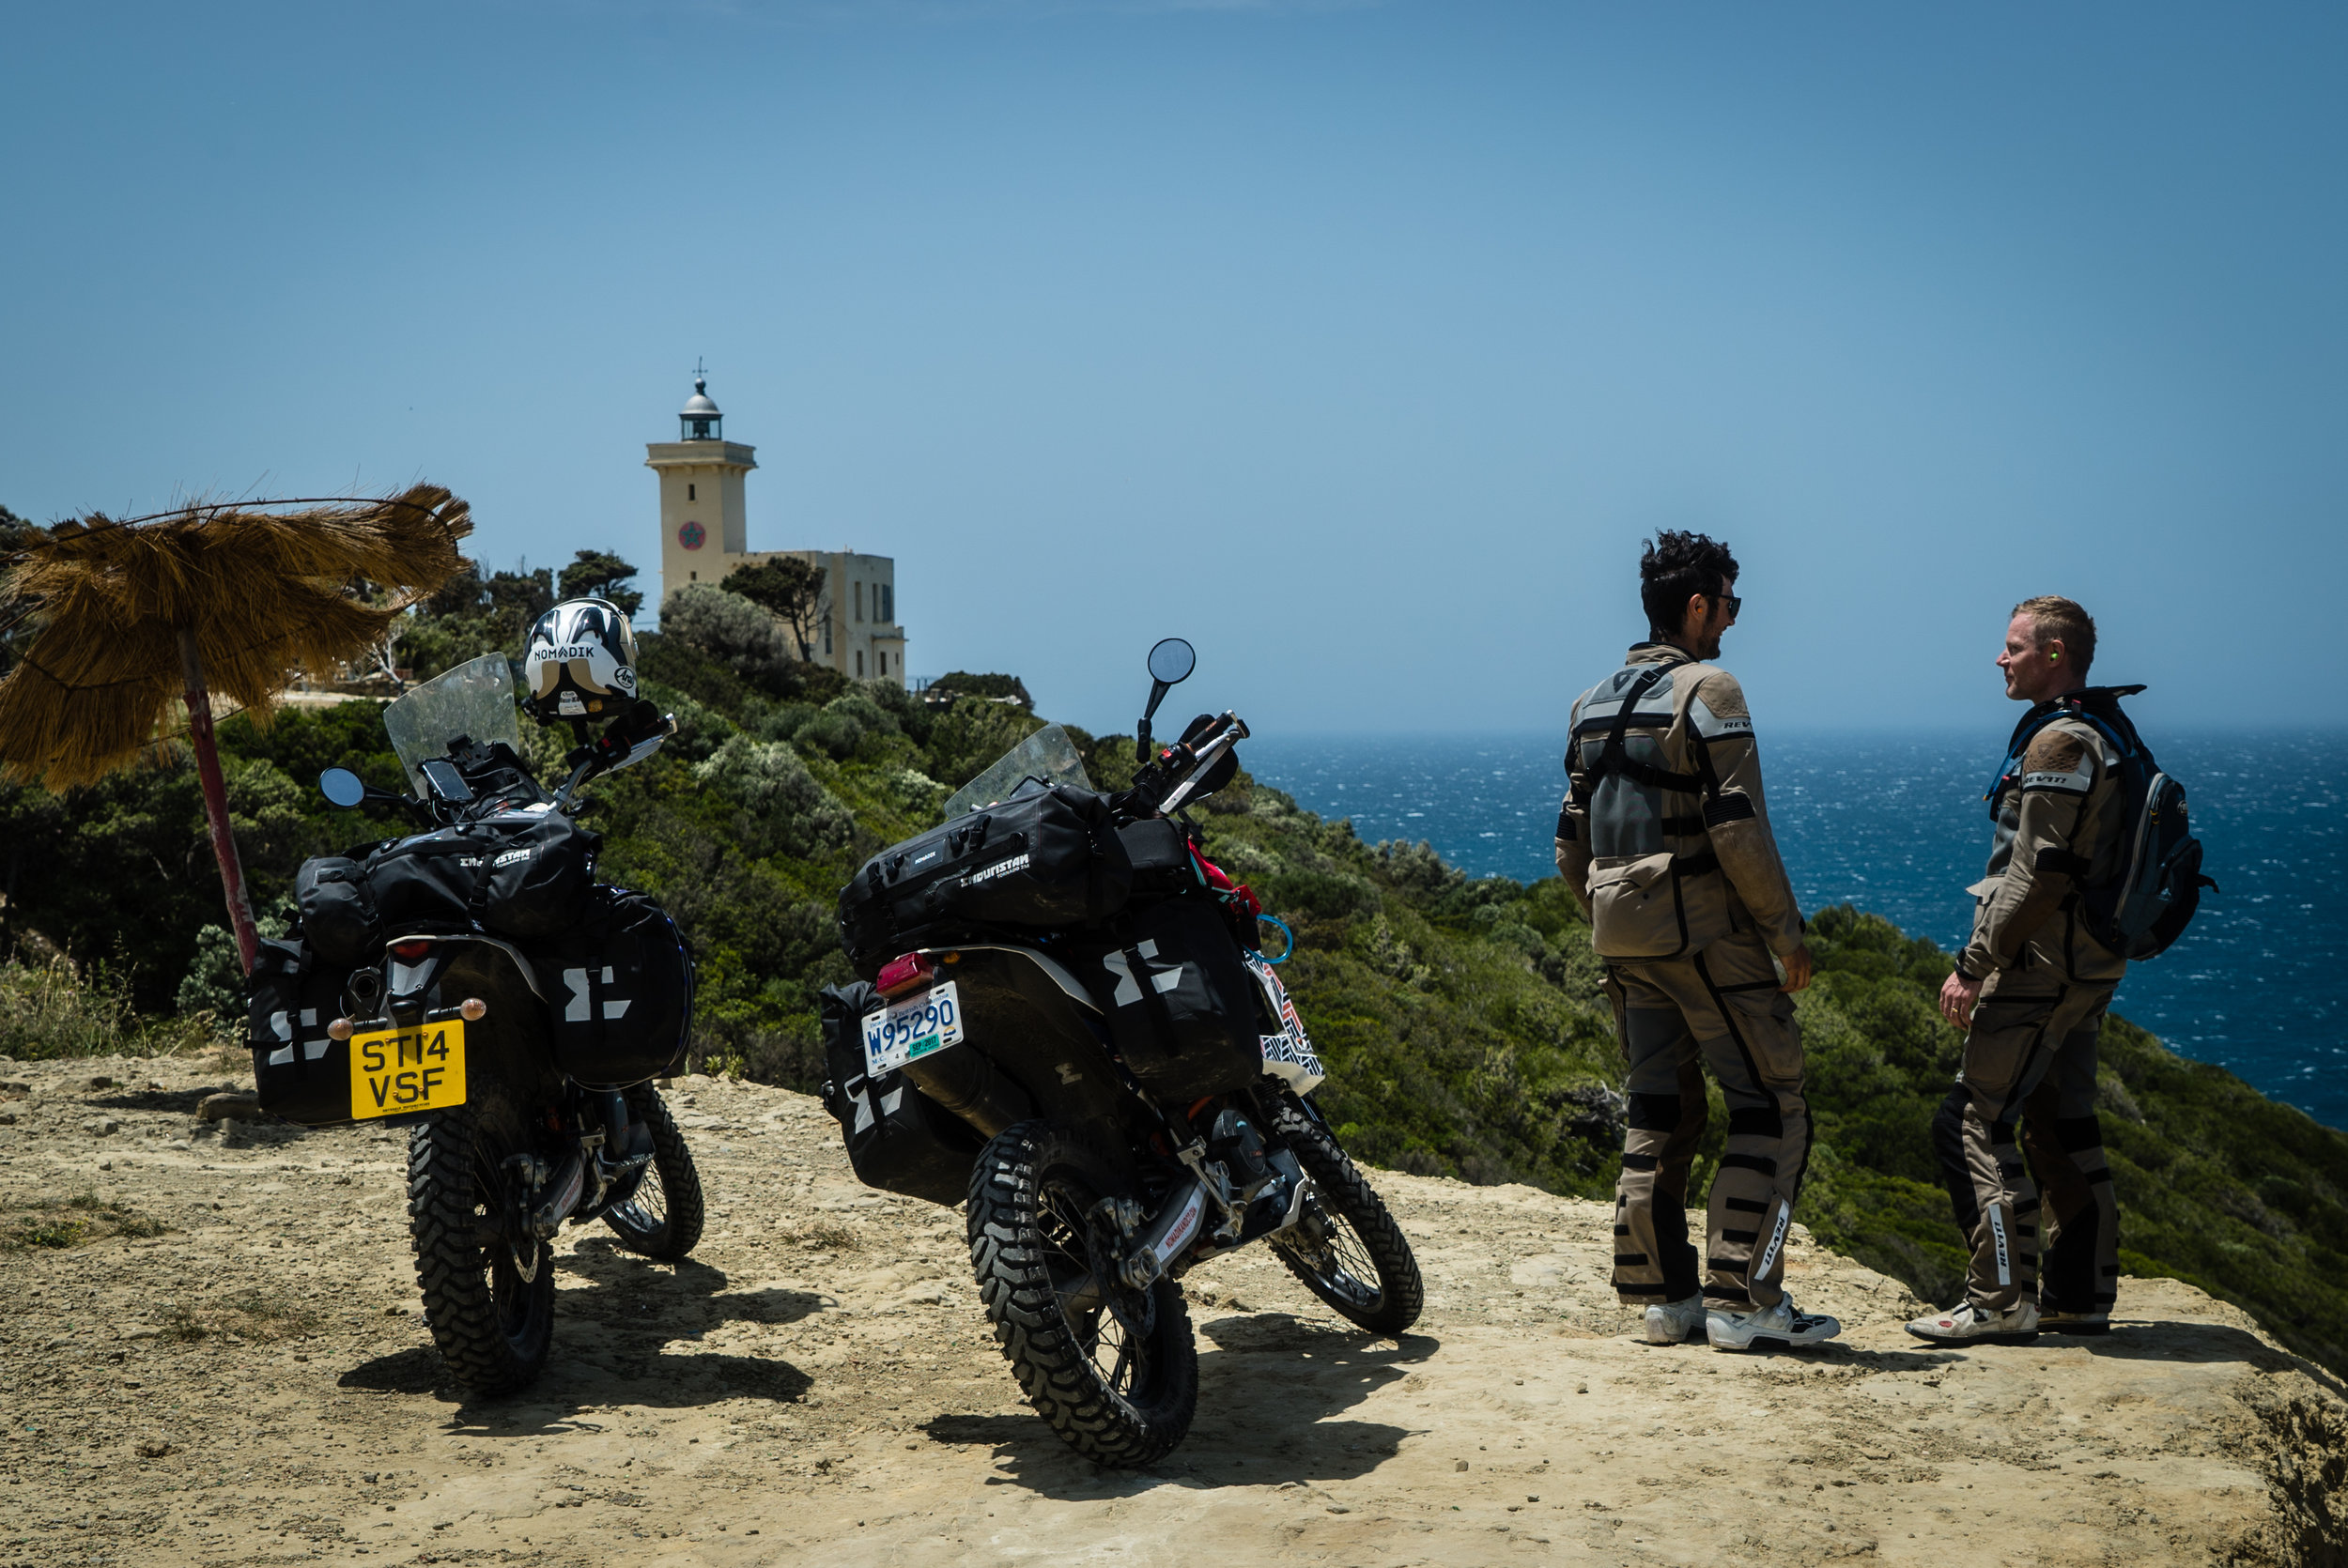 The scenic route from Algecerias to Tangier along the Atlantic.